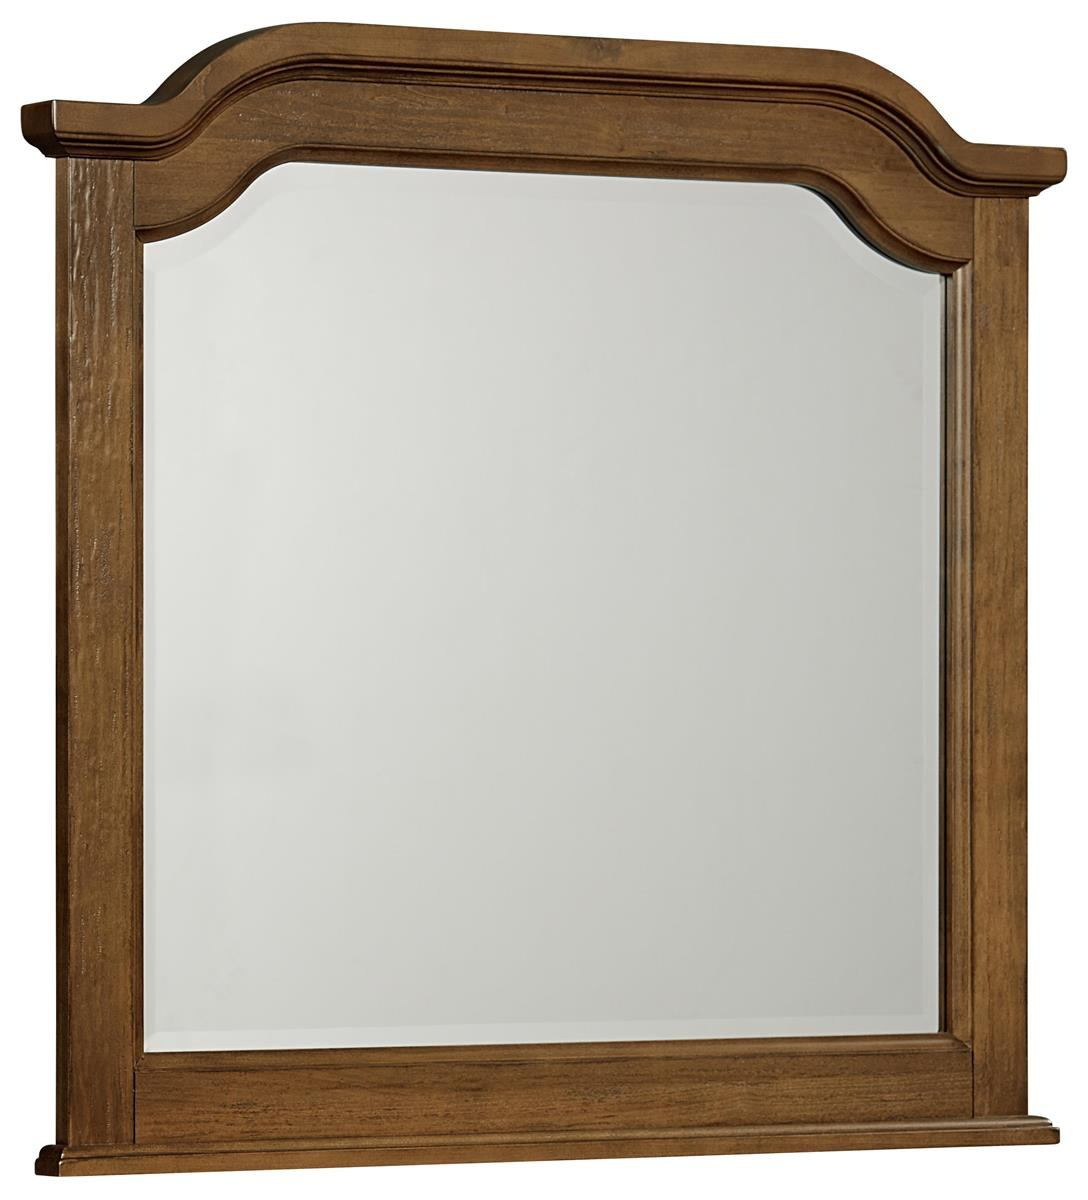 All-American Arrendelle Arch Mirror in Antique Cherry